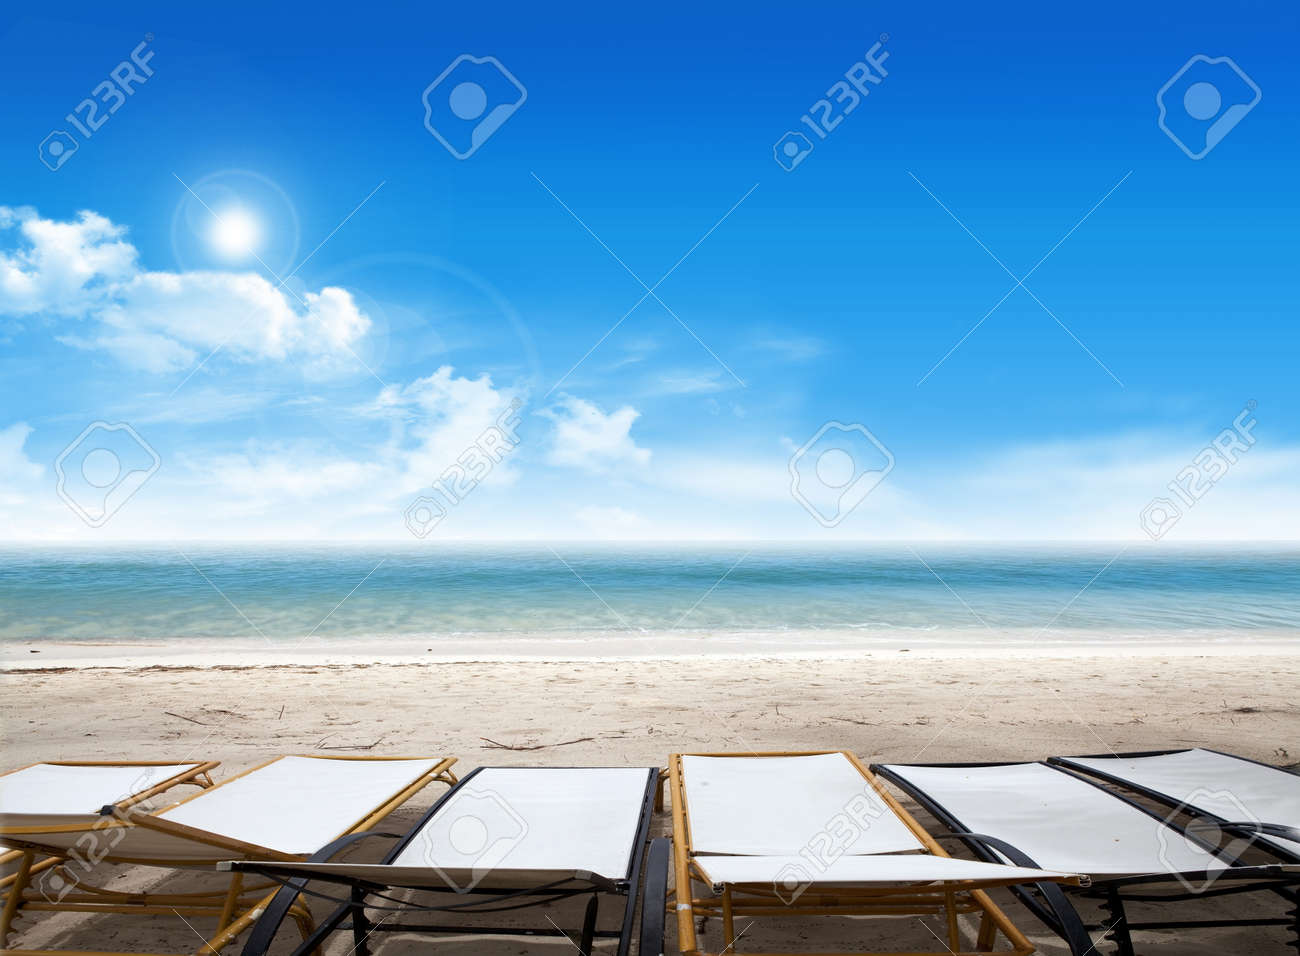 Tropical beach with deck chairs on the ocean and blue sky with clouds in the background Stock Photo - 13965081